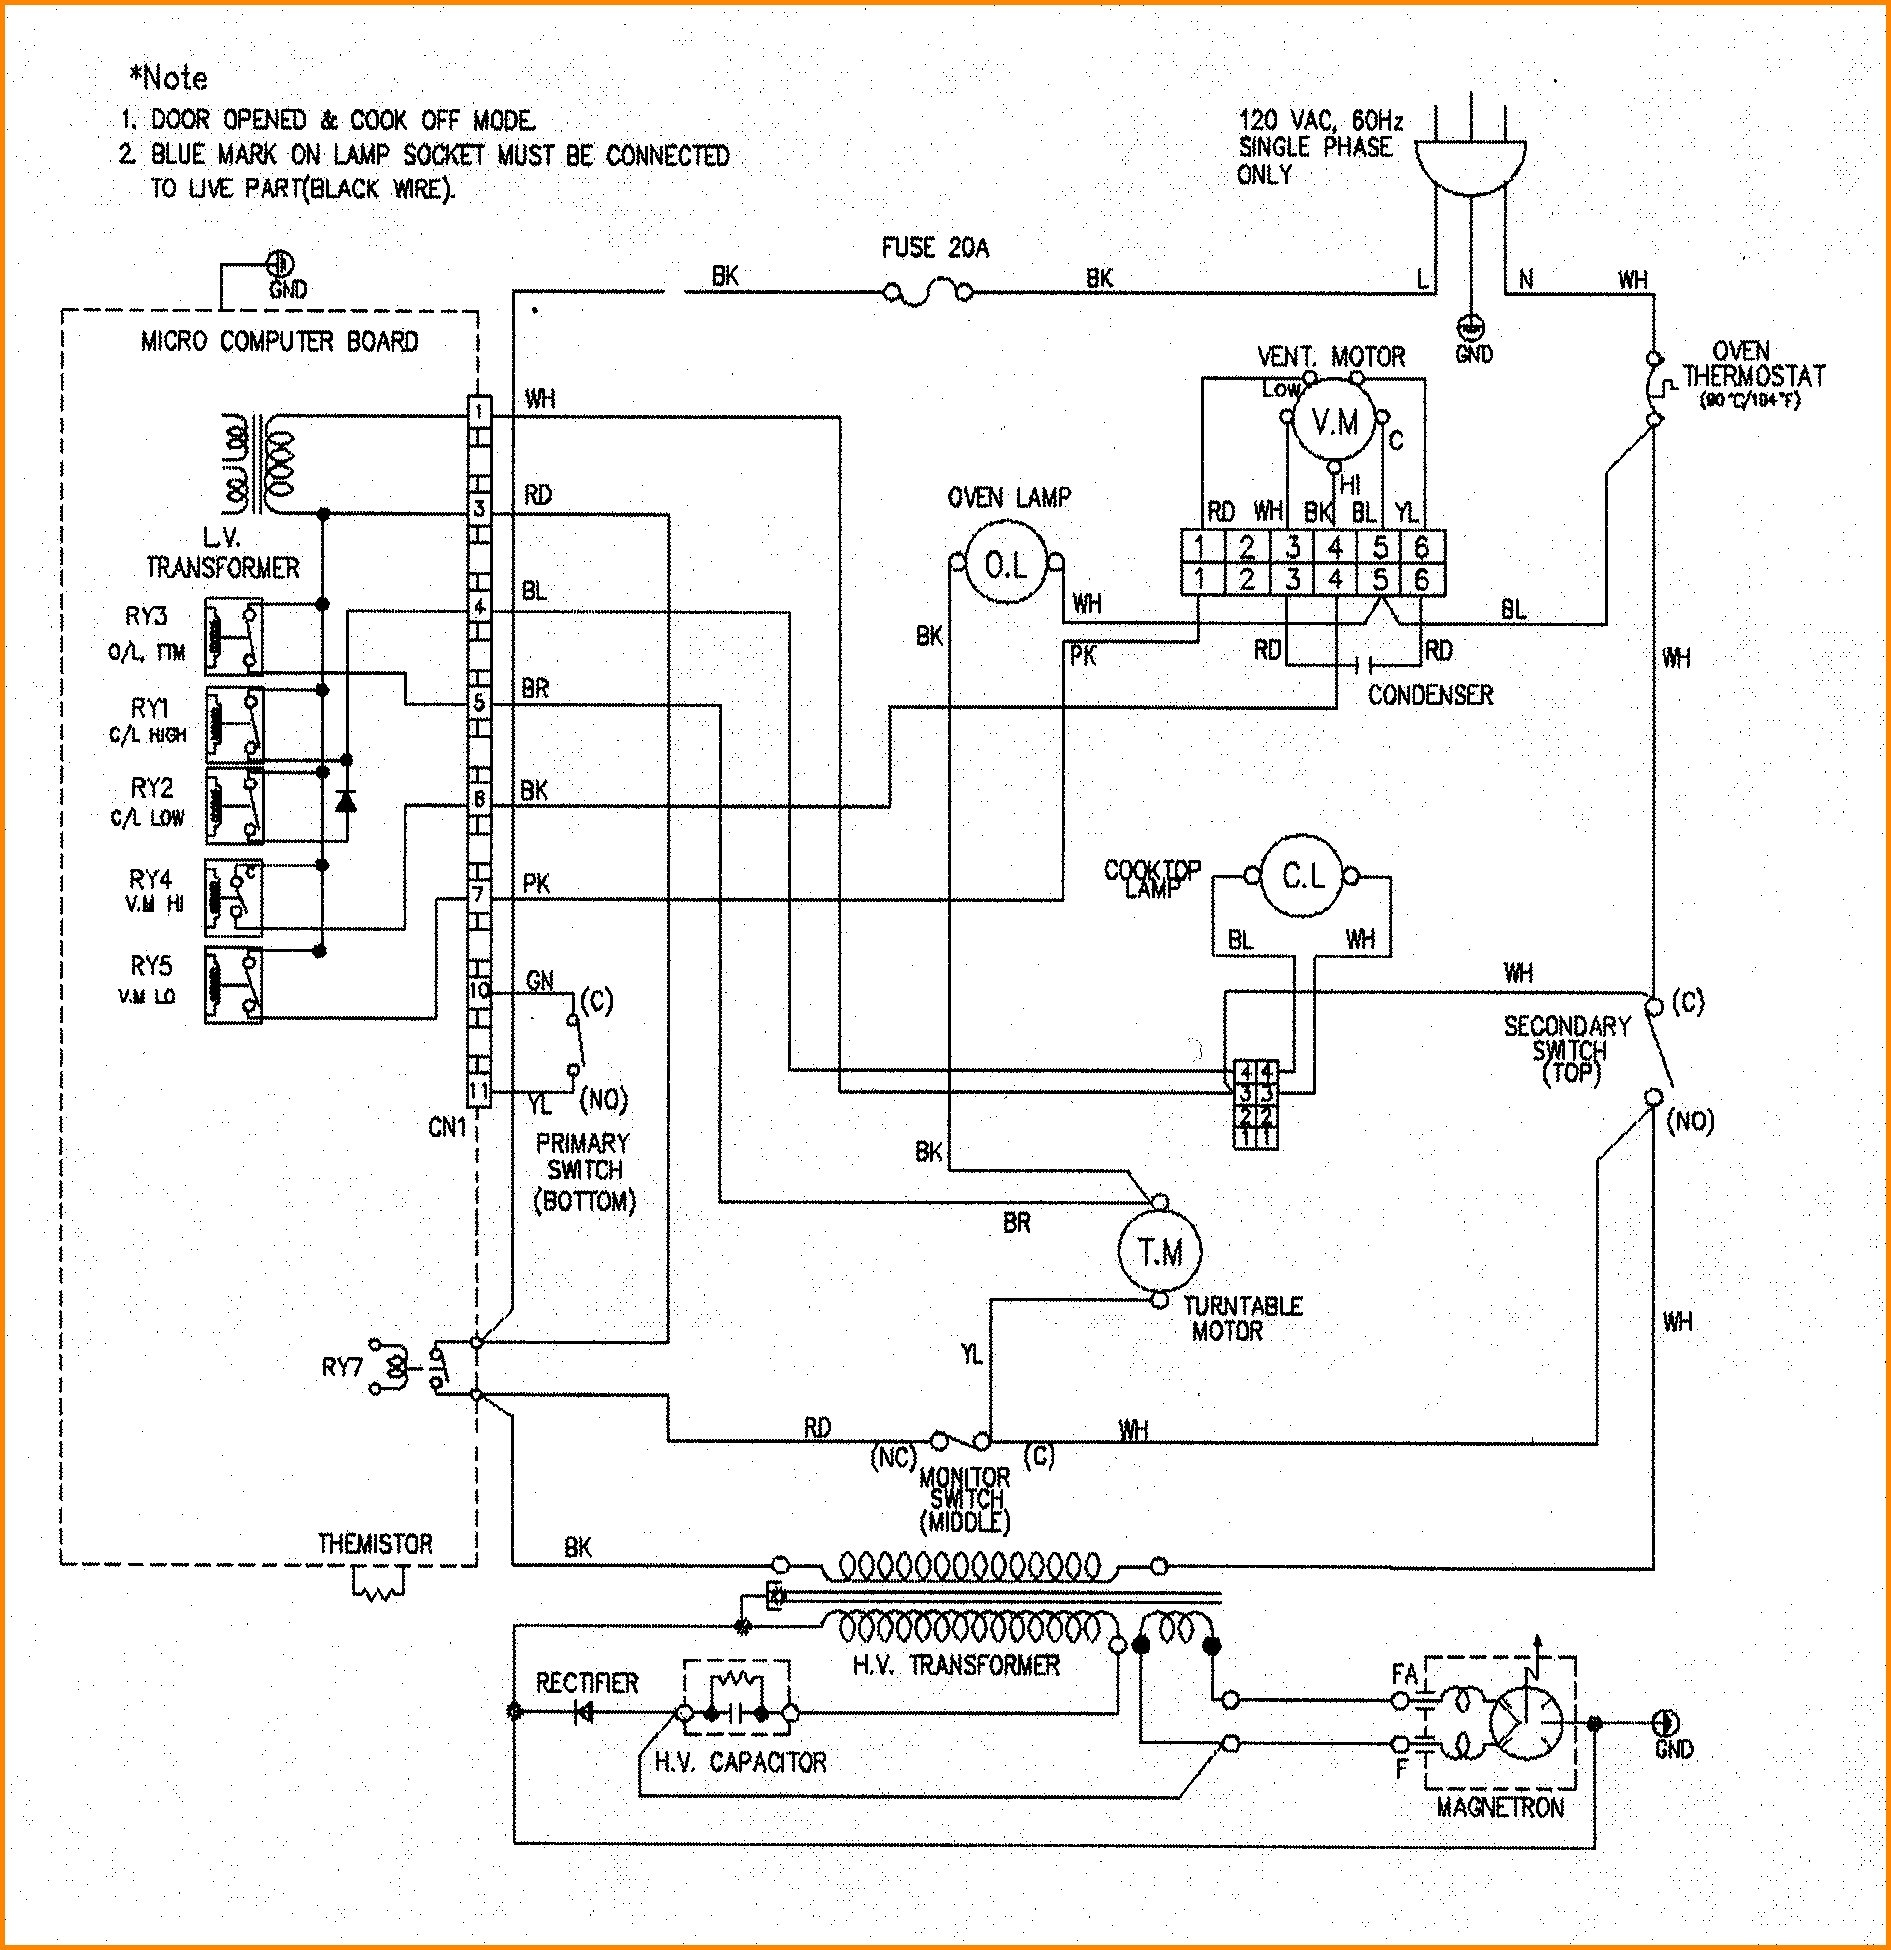 heater element 240v wiring diagram